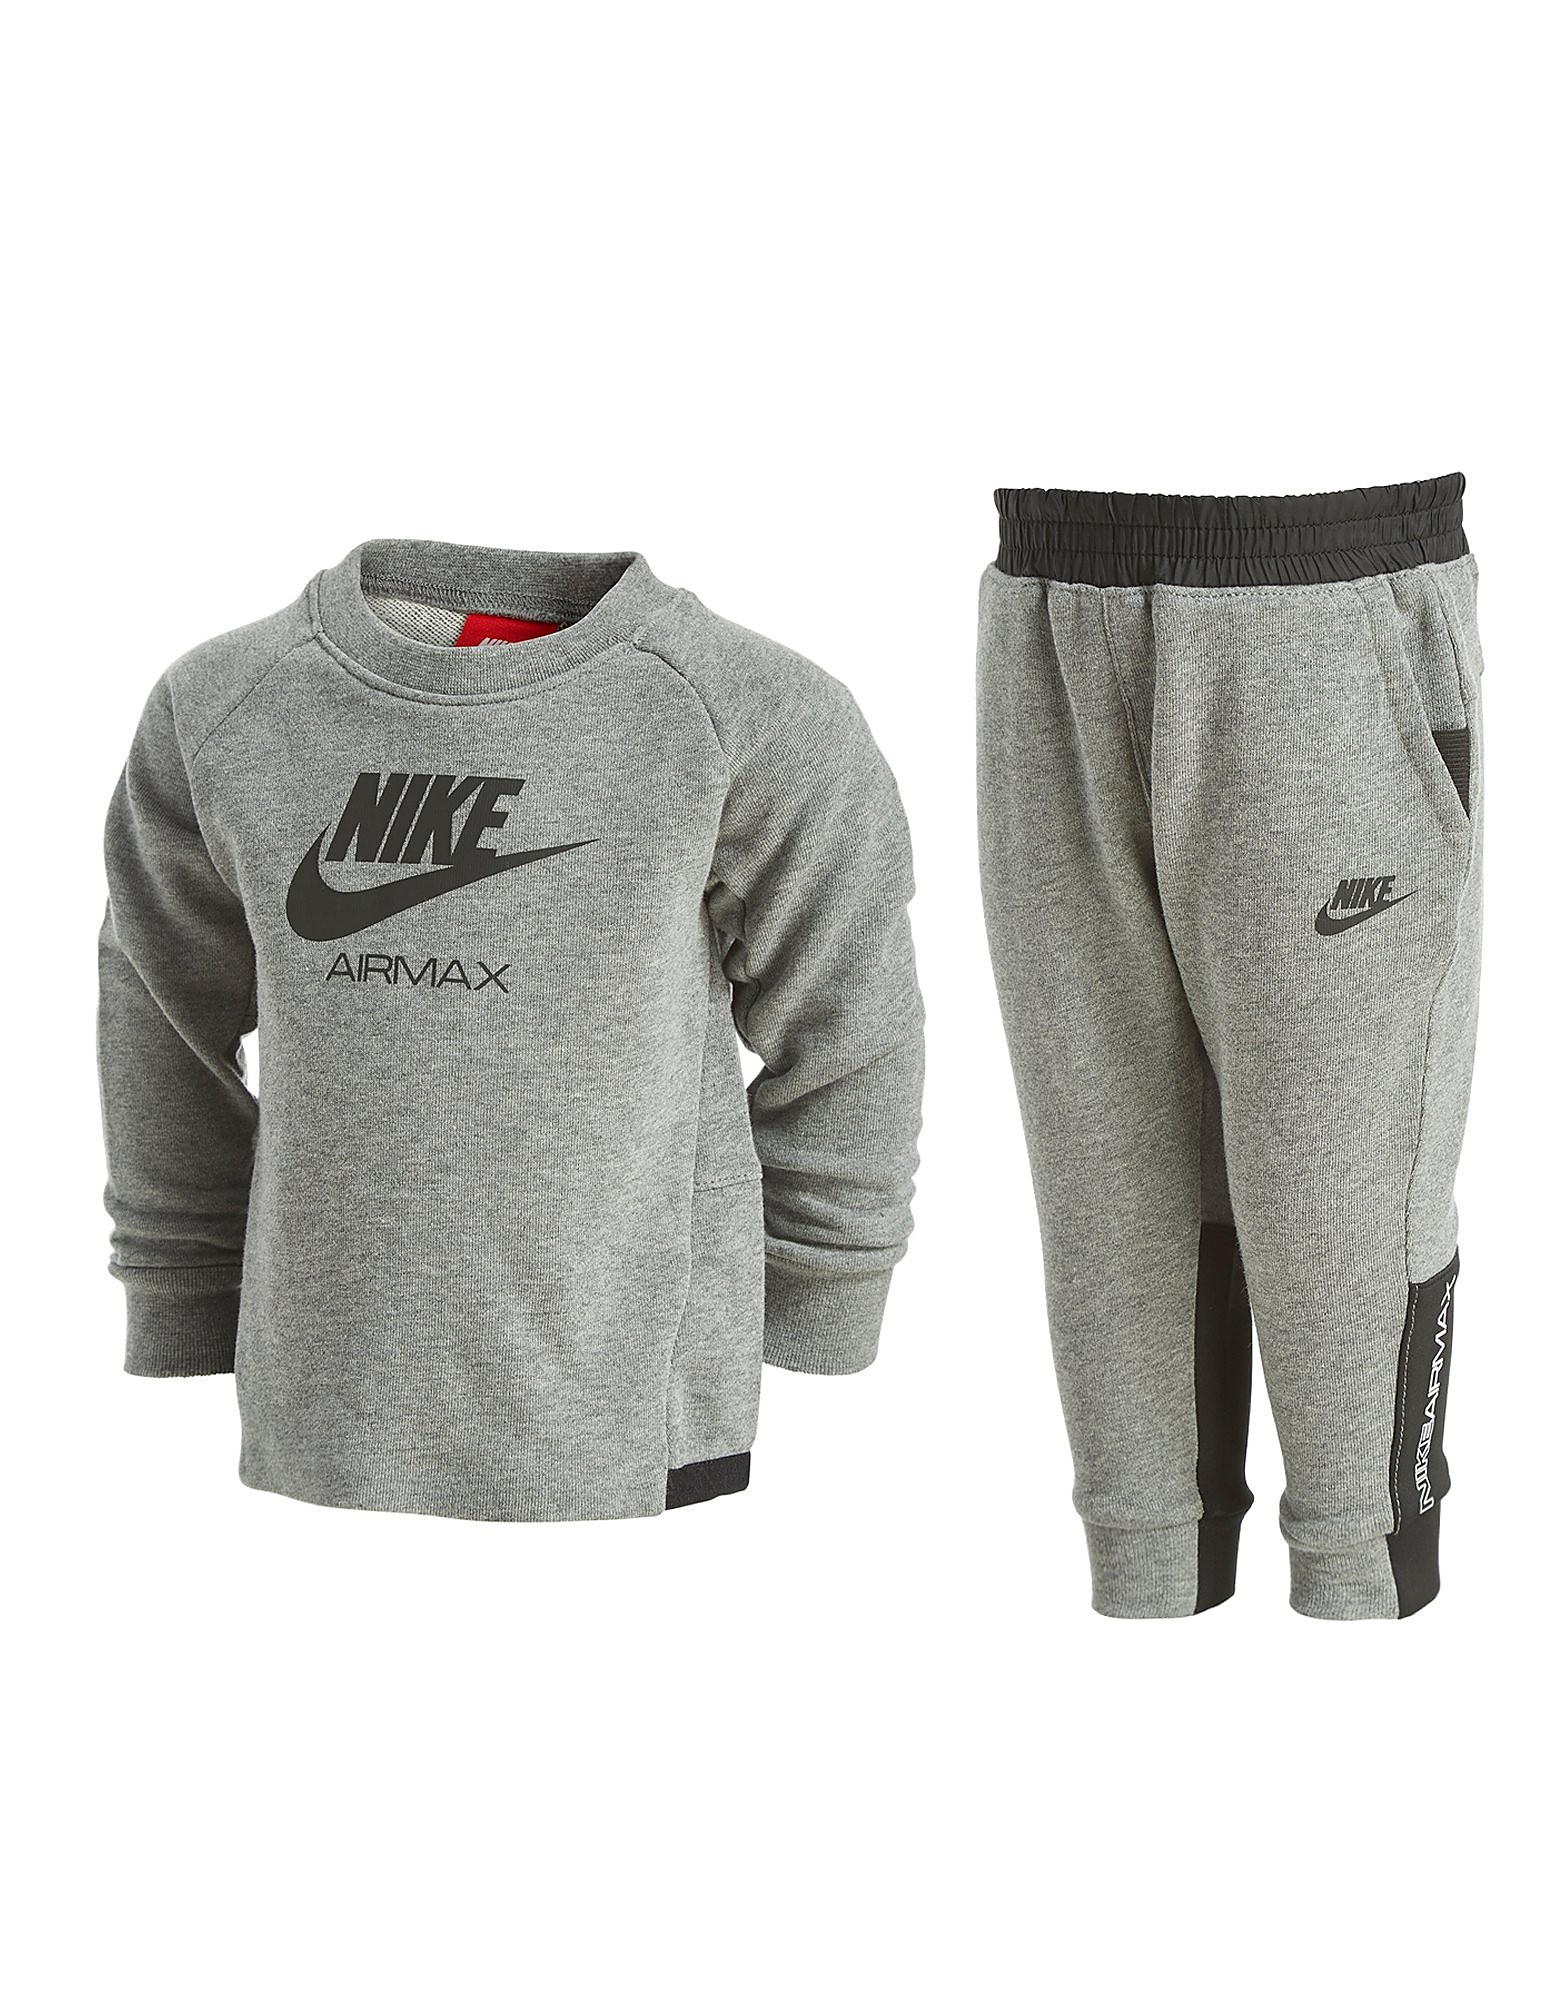 Nike Air Max Crew Suit Infant